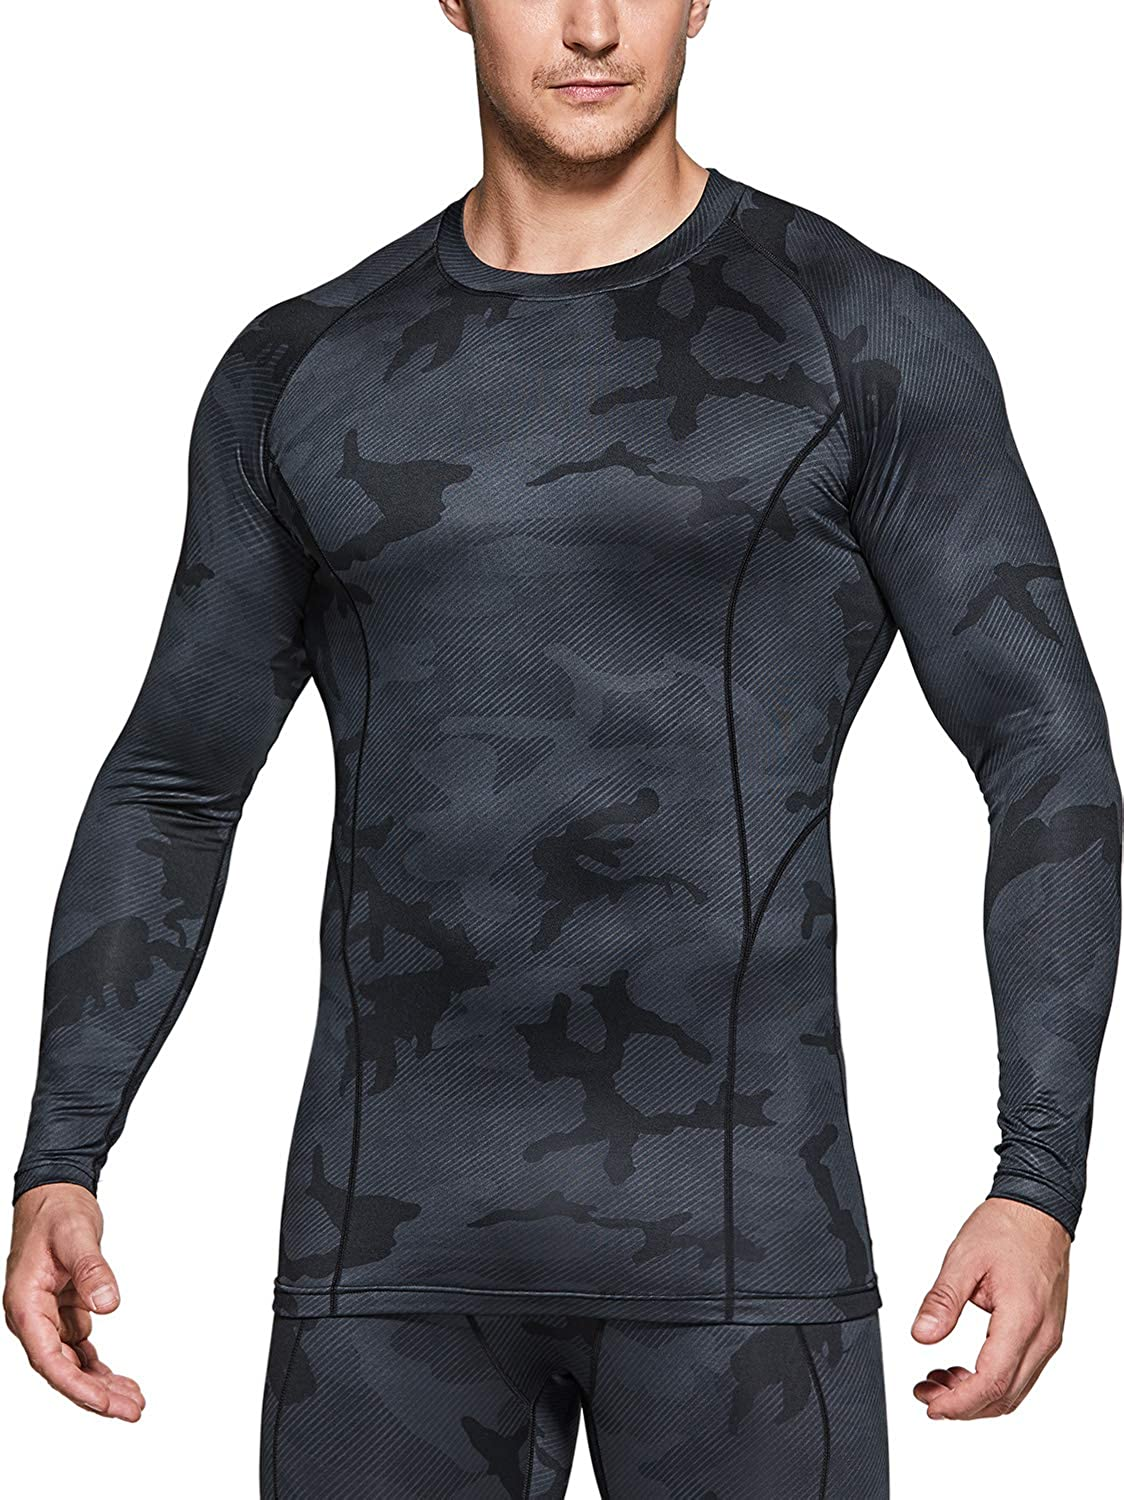 low-pricing TSLA 1 or 2 Selling and selling Pack Men's Shirts Compression A Long Thermal Sleeve